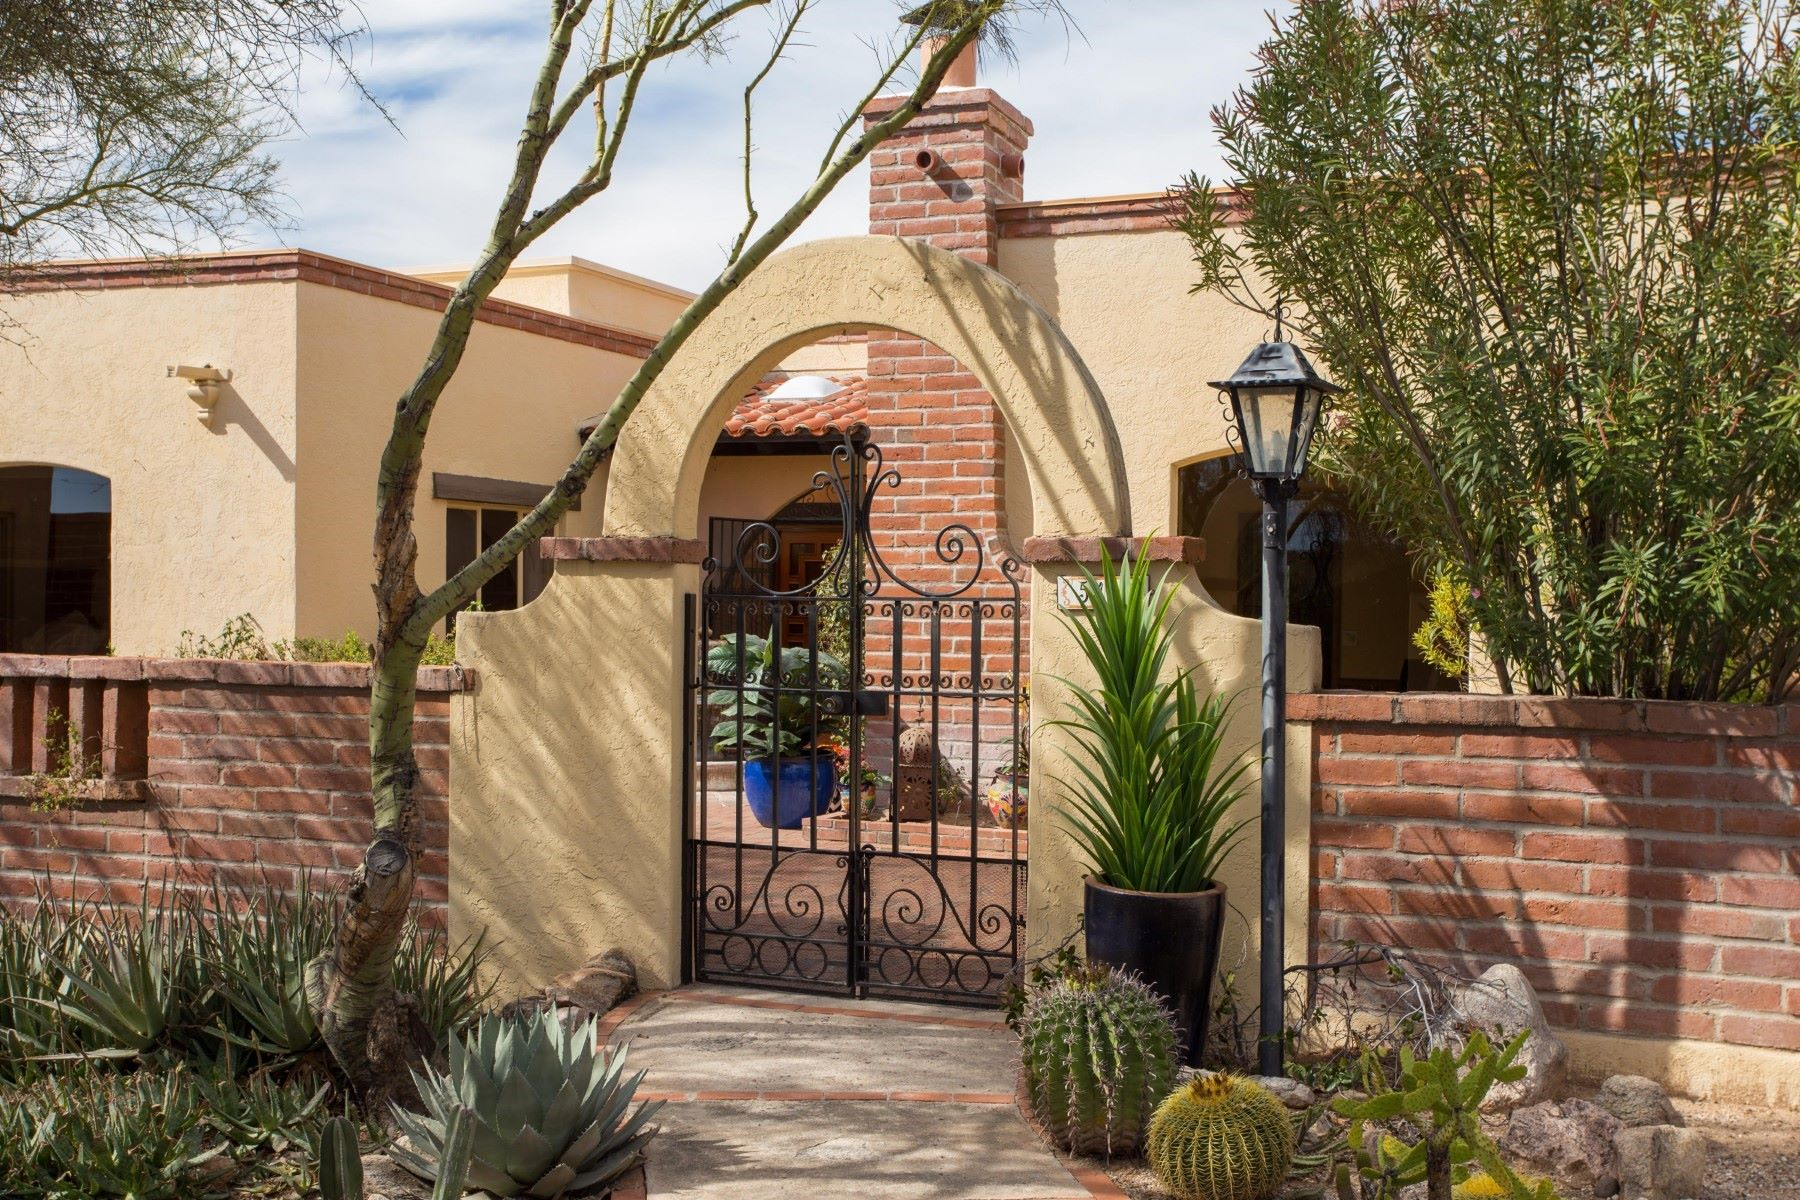 Casa Unifamiliar por un Venta en Charming territorial home in the guard gated skyline C.C. Estates 5409 E Gleneagles Drive Tucson, Arizona, 85718 Estados Unidos